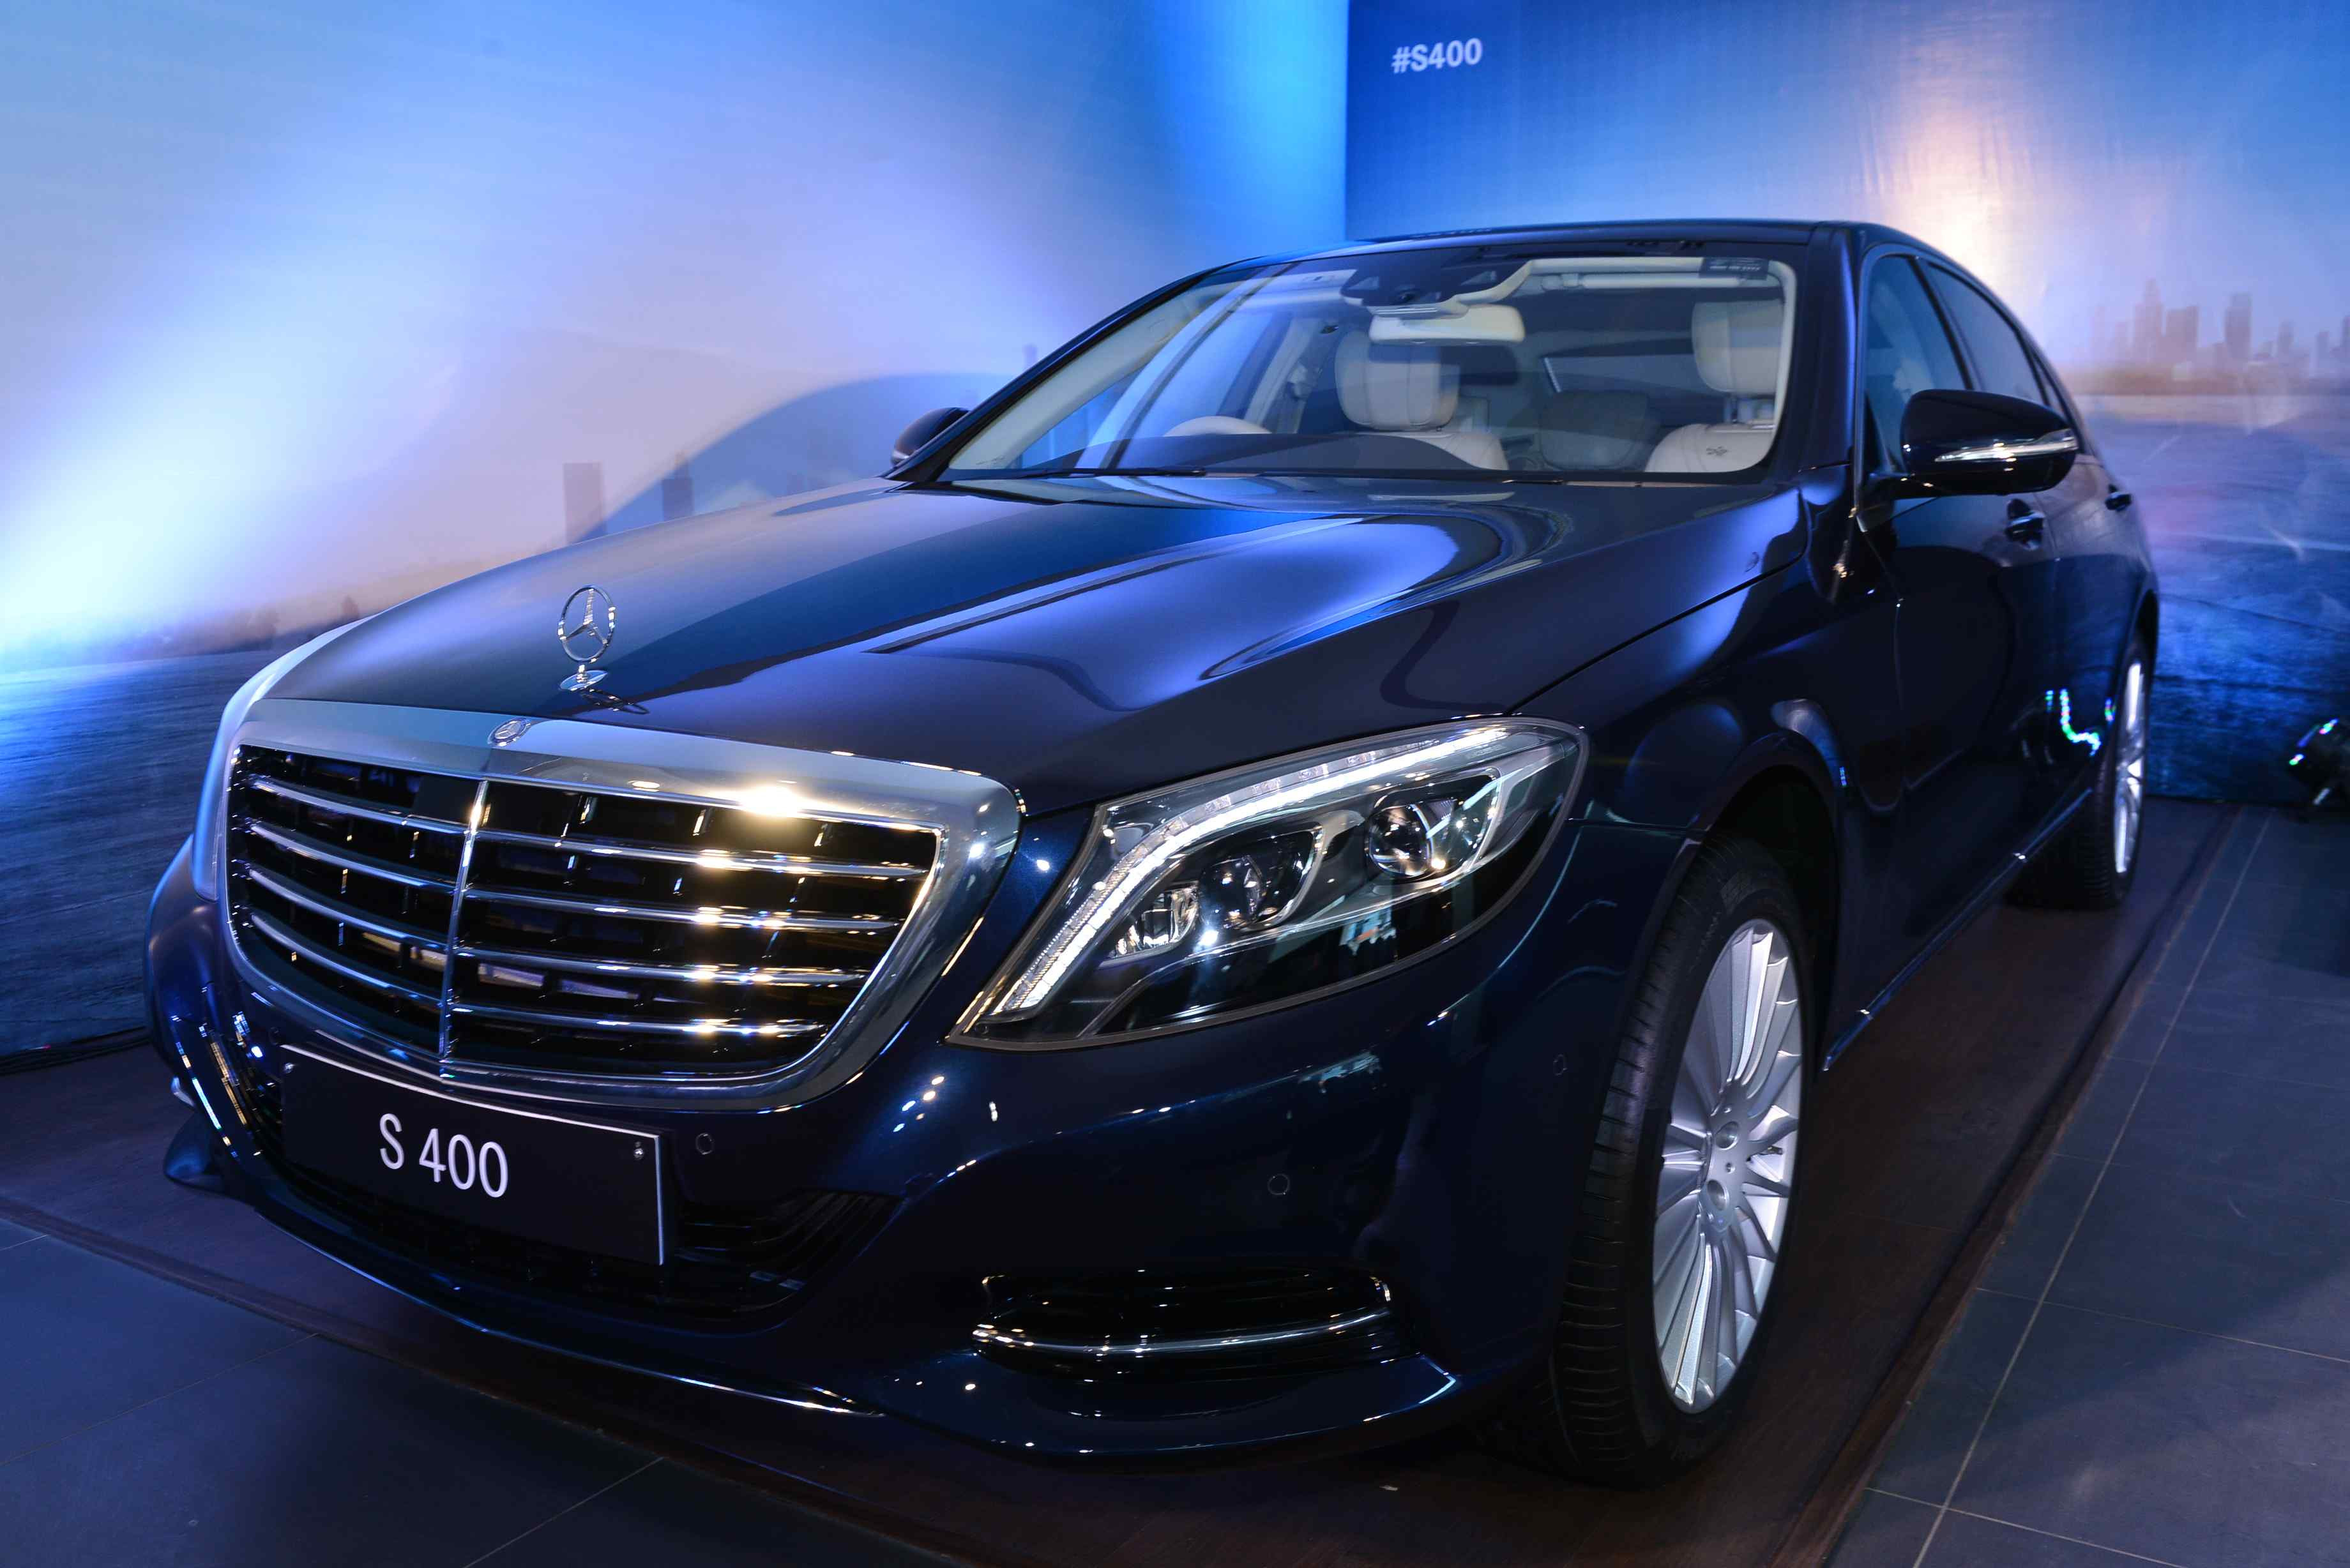 Mercedes Benz enhances its lineup with the luxurious S 400